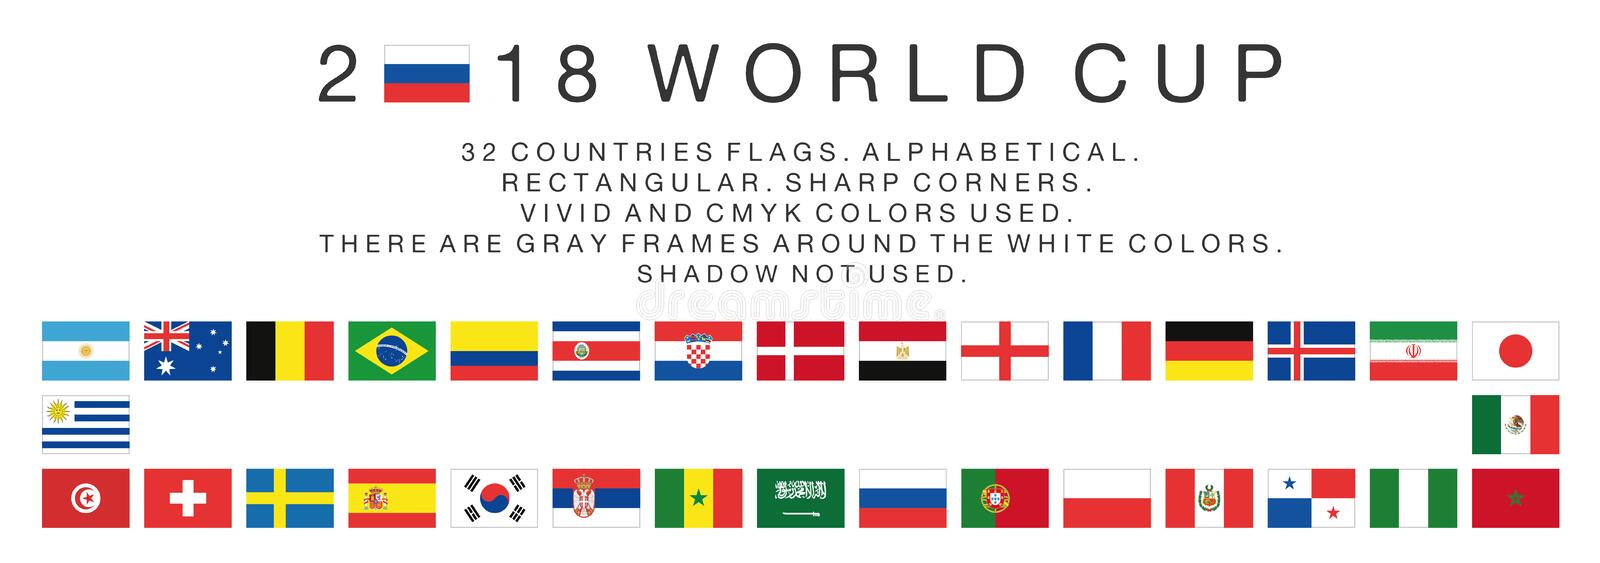 Rectangular flags of 2018 World Cup countries. Flags of 2018 World Cup national teams. 32 countries. Rectangular. Sharp corners. Vivid and cmyk colors. There are